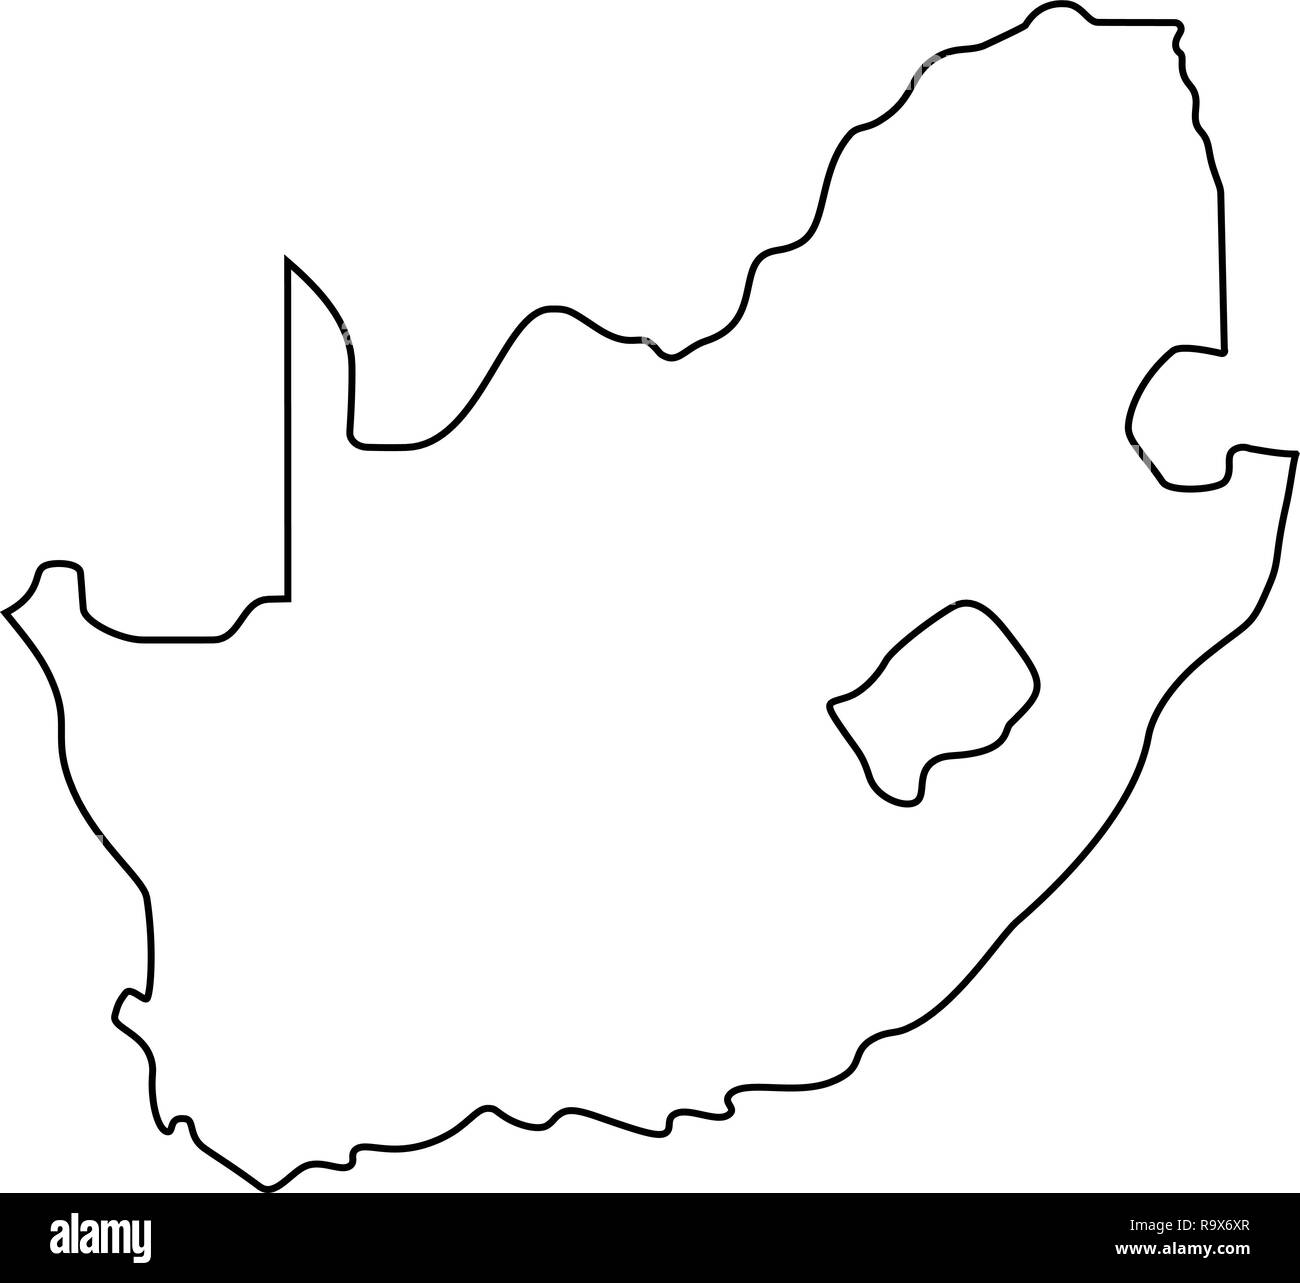 Africa Map Silhouette Vector.Map Of South Africa Outline Silhouette Of South Africa